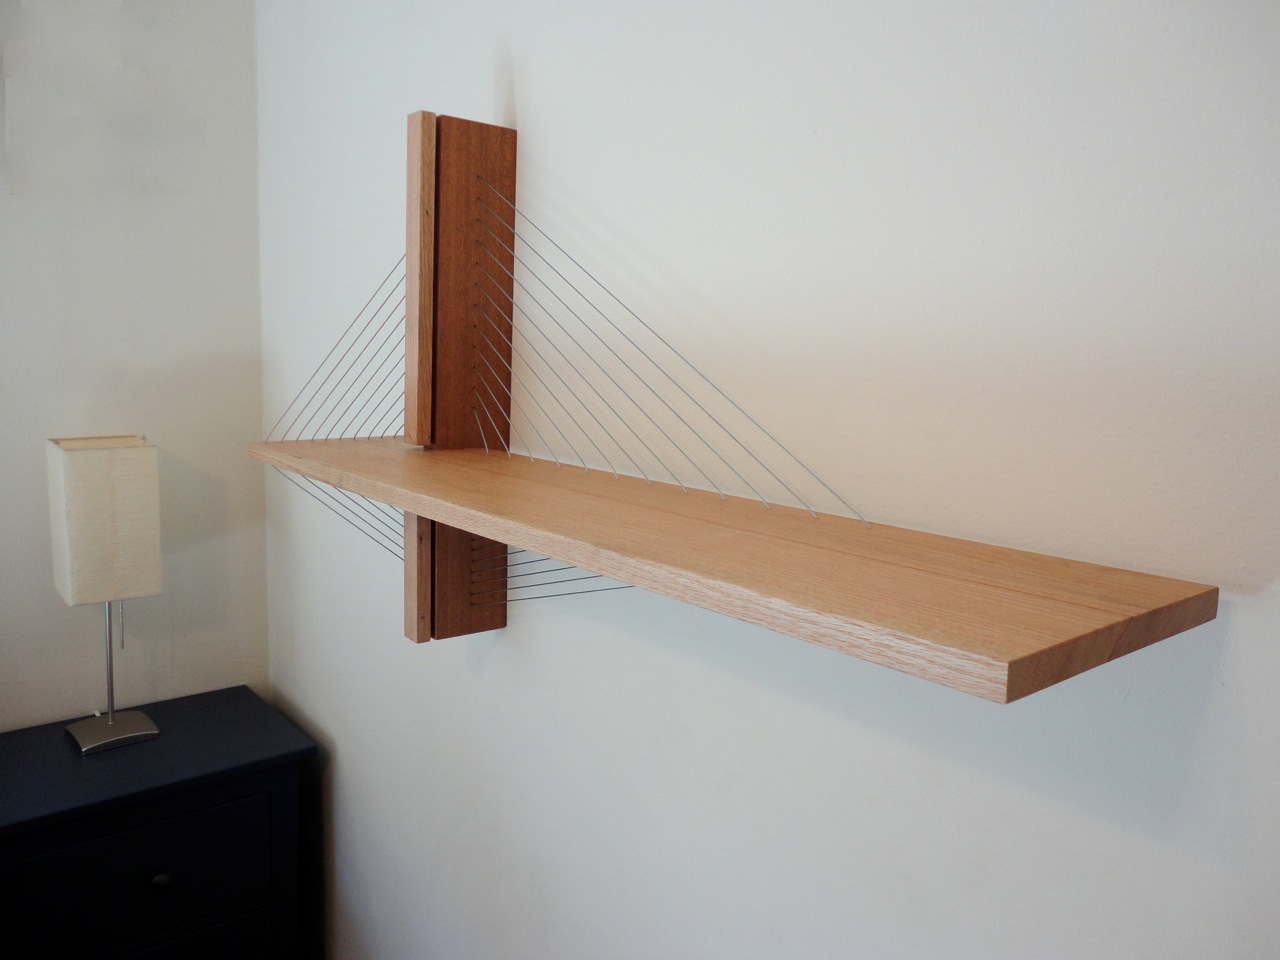 Awesome furniture are held together only by tension Shelf